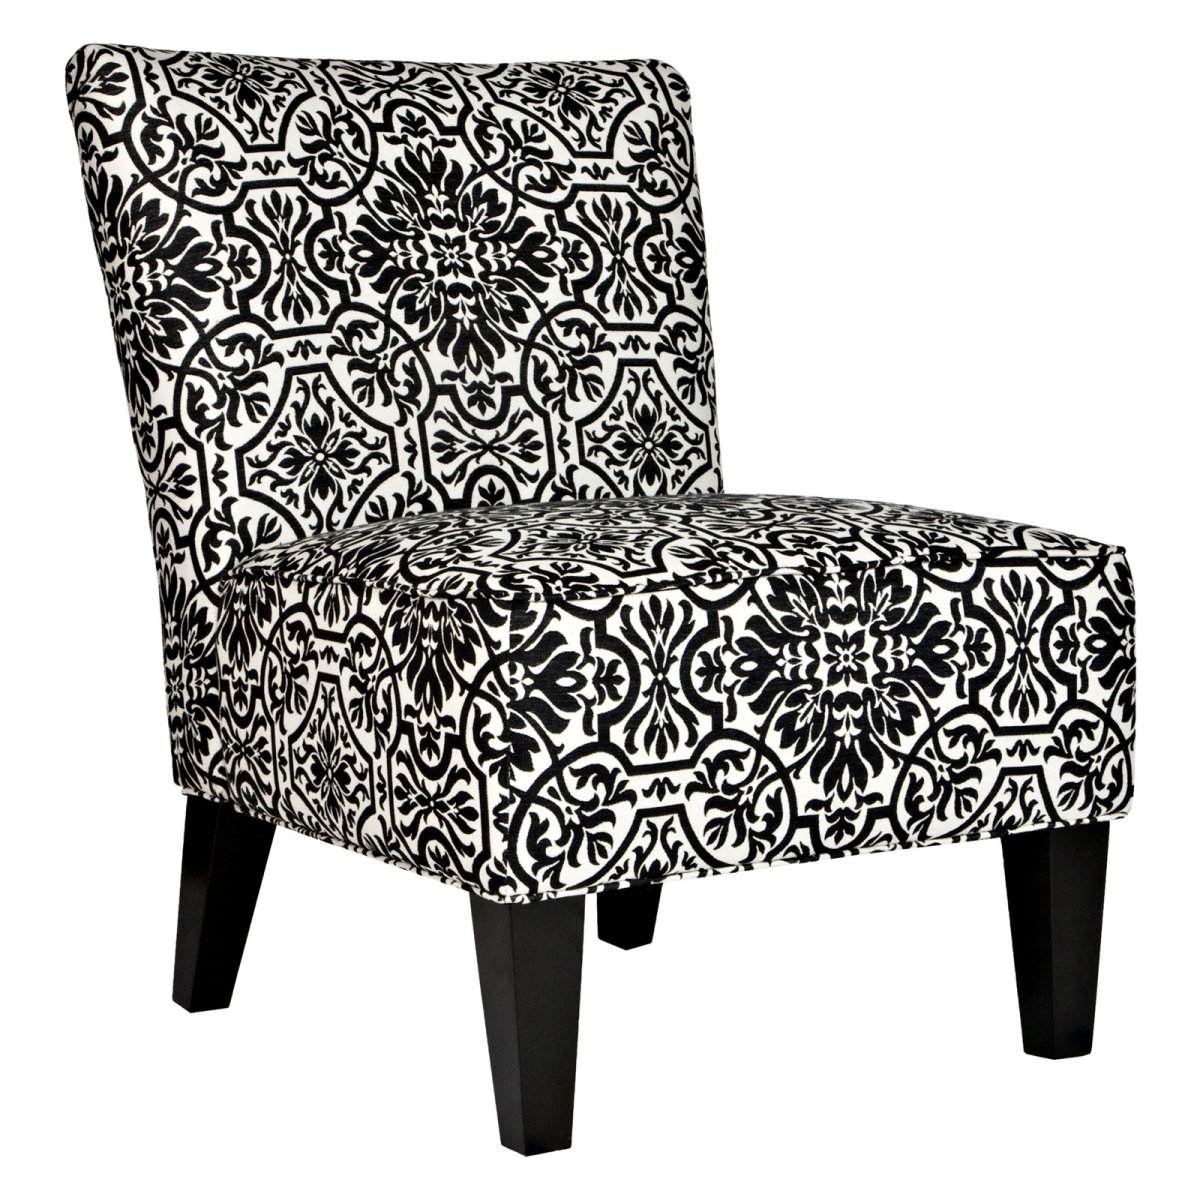 Furniture clipart solid Chair Room Style with Black